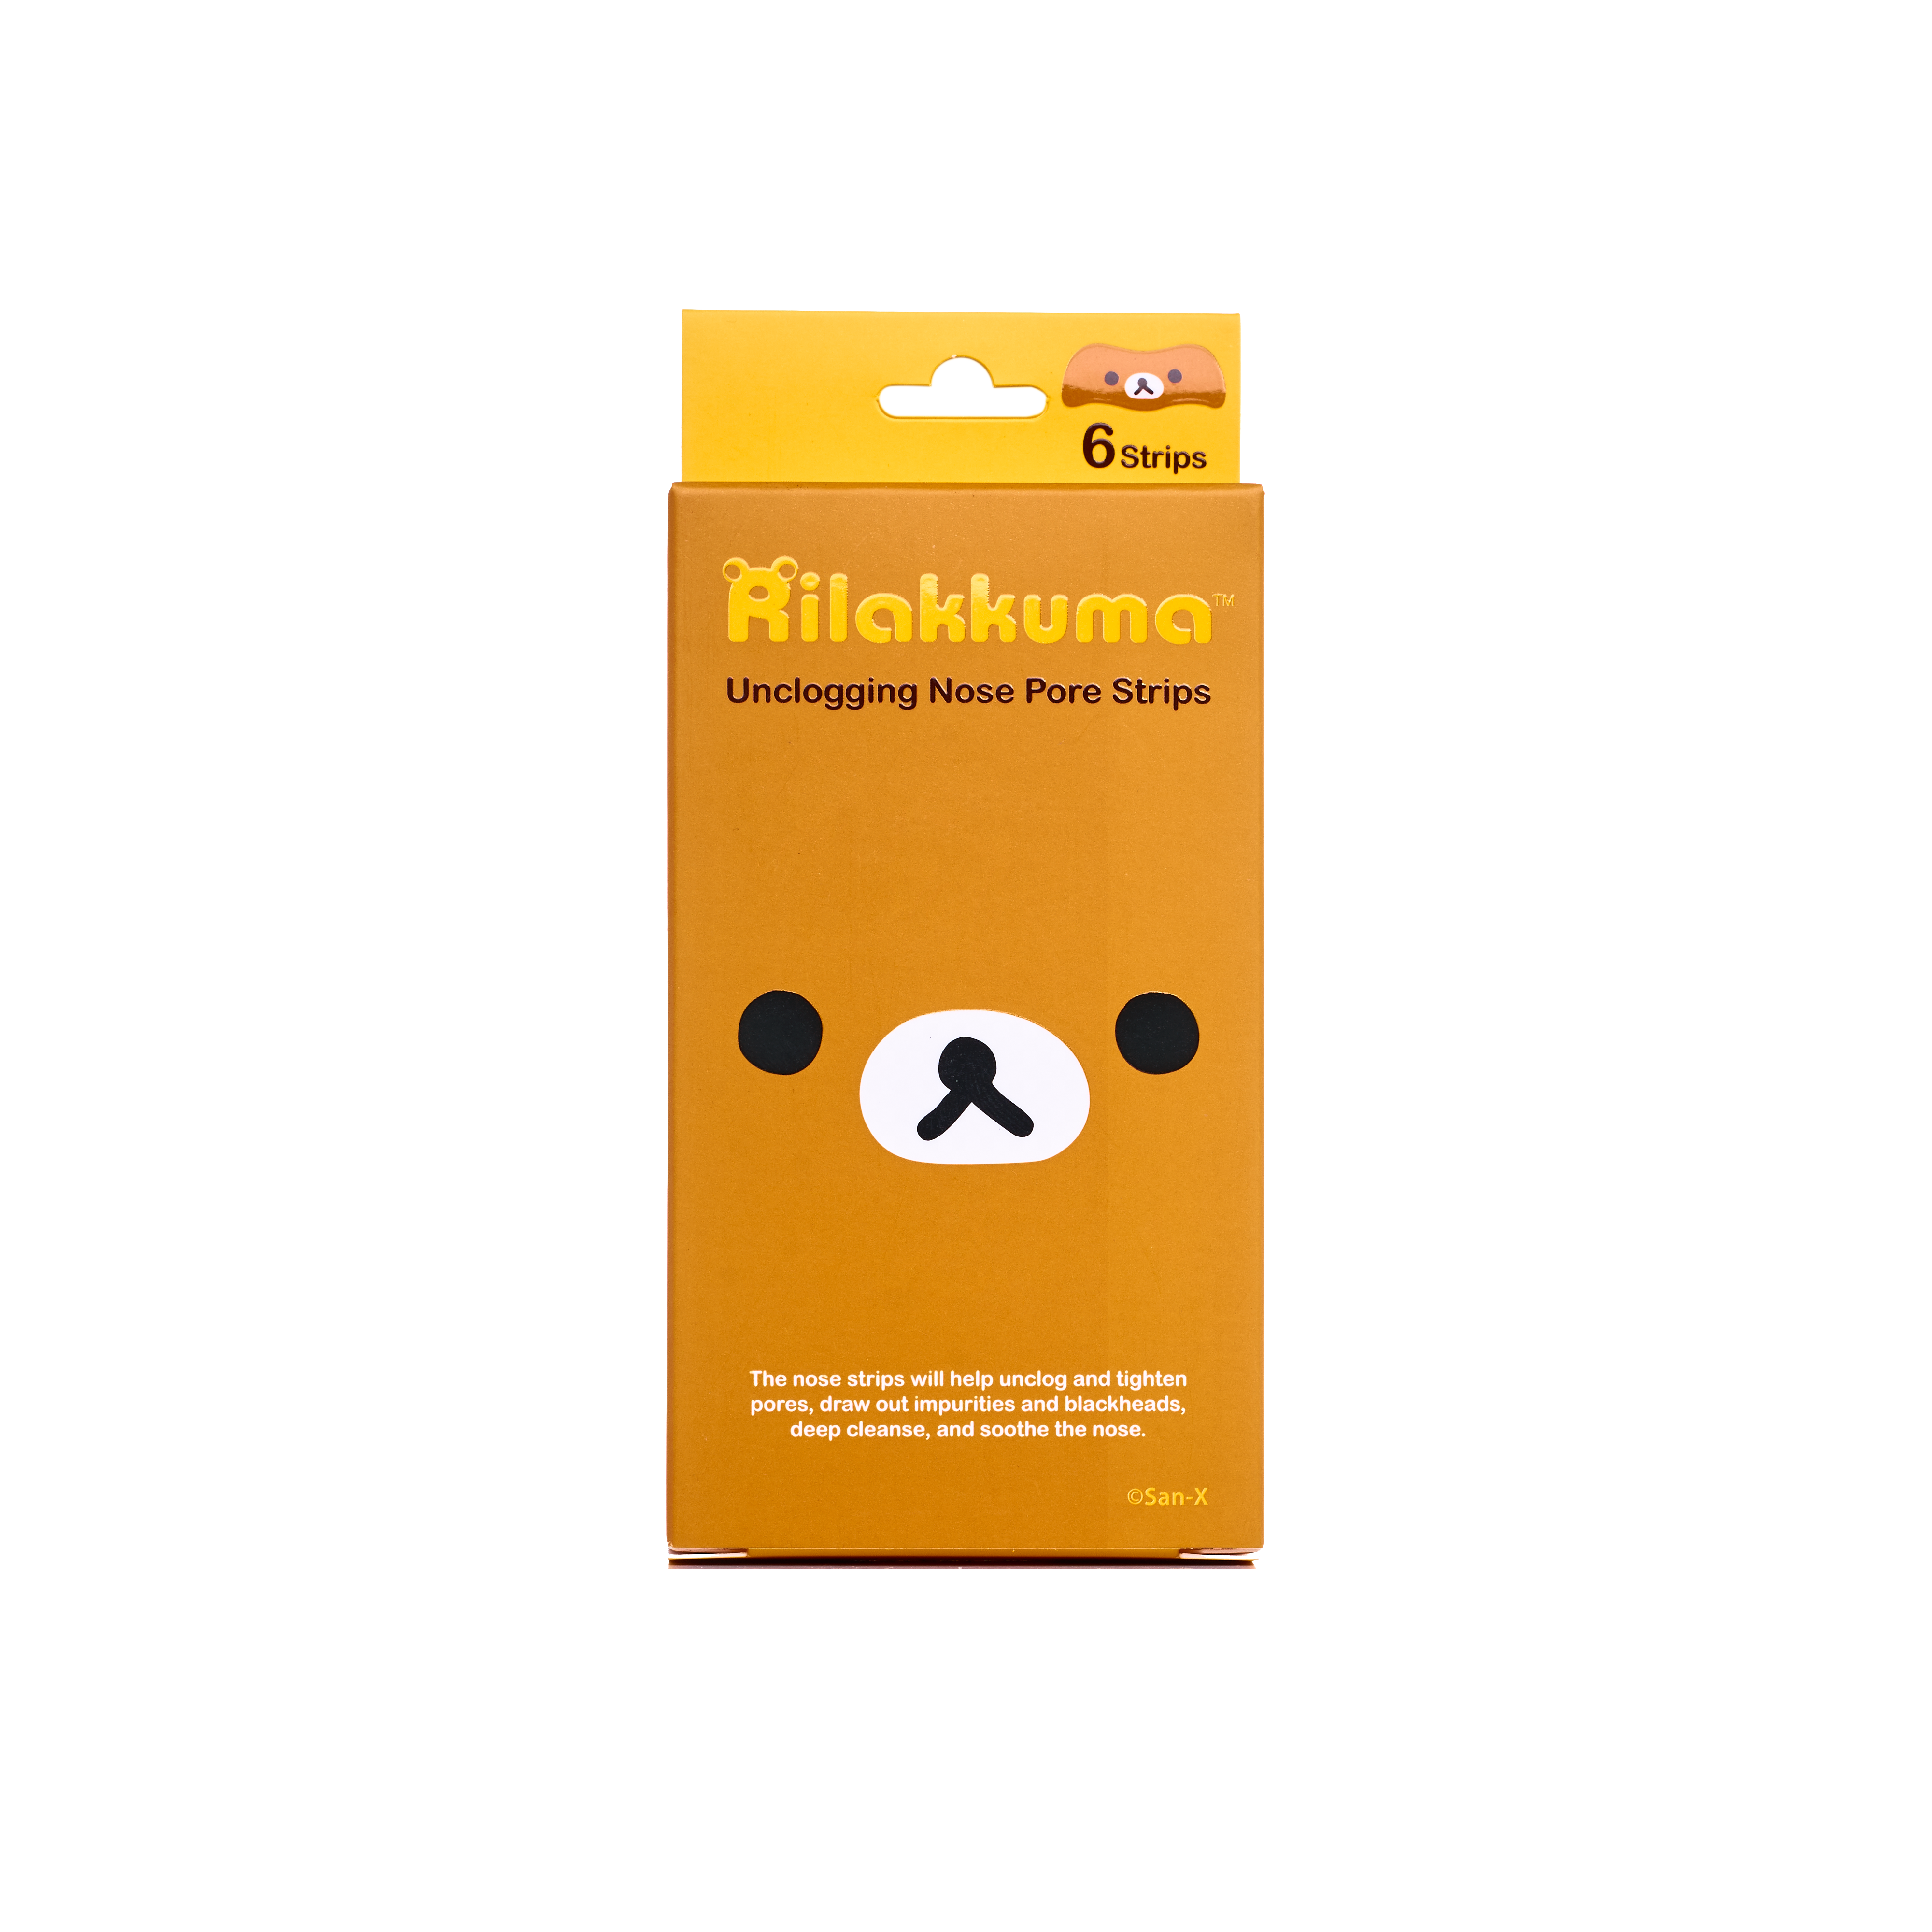 Rilakkuma Unclogging Nose Pore Strips